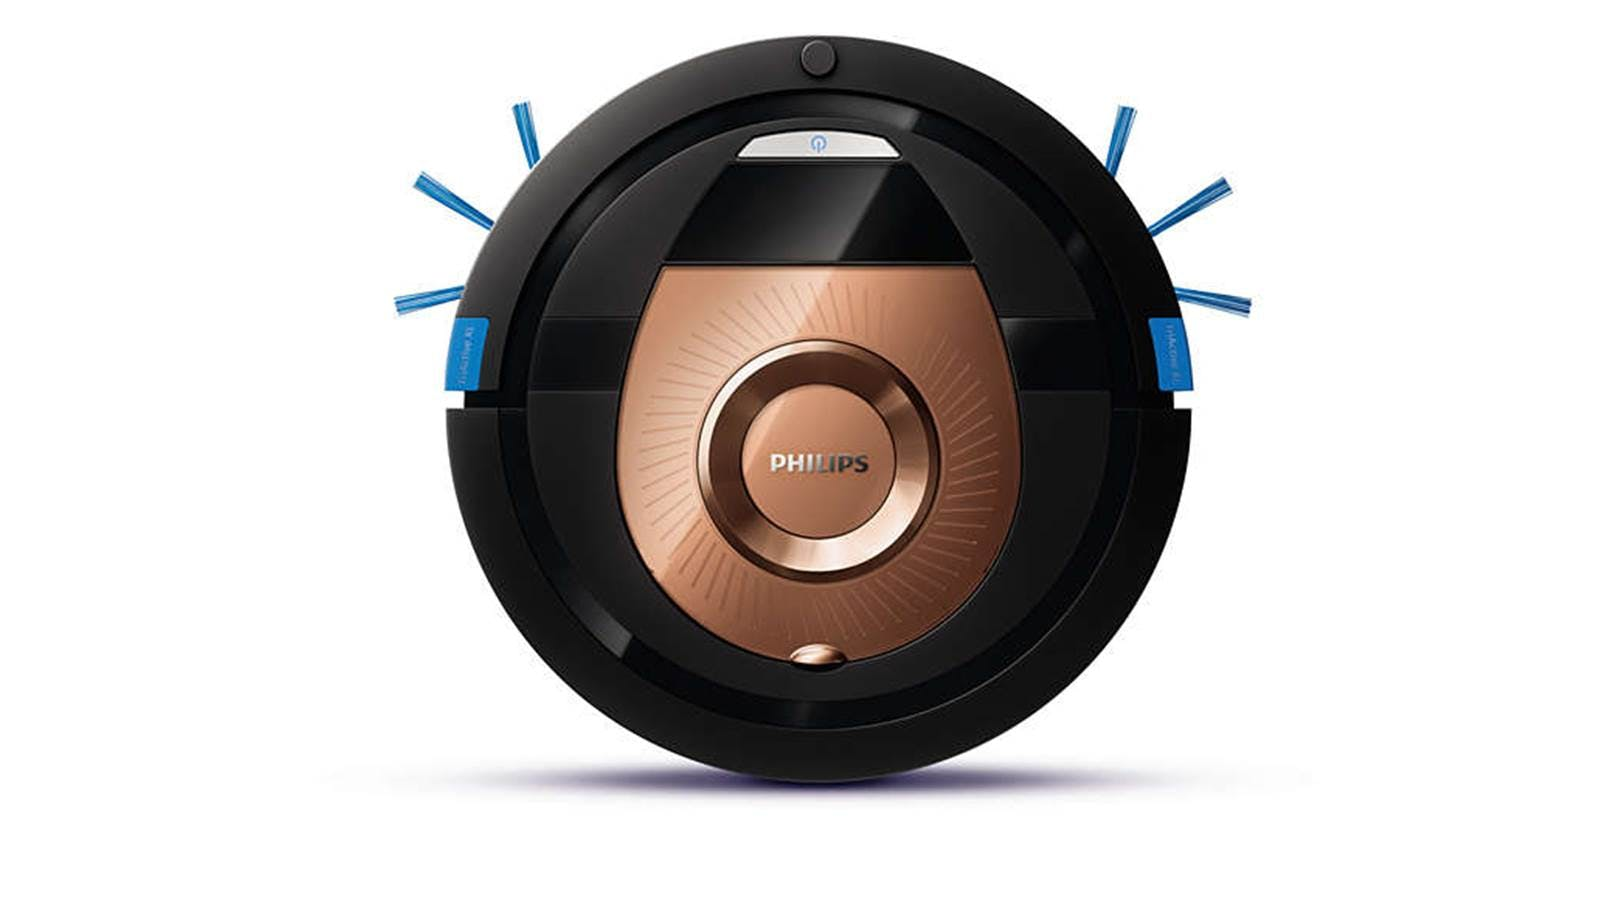 Philips Smartpro Fc8776 Compact Robotic Vacuum Cleaner